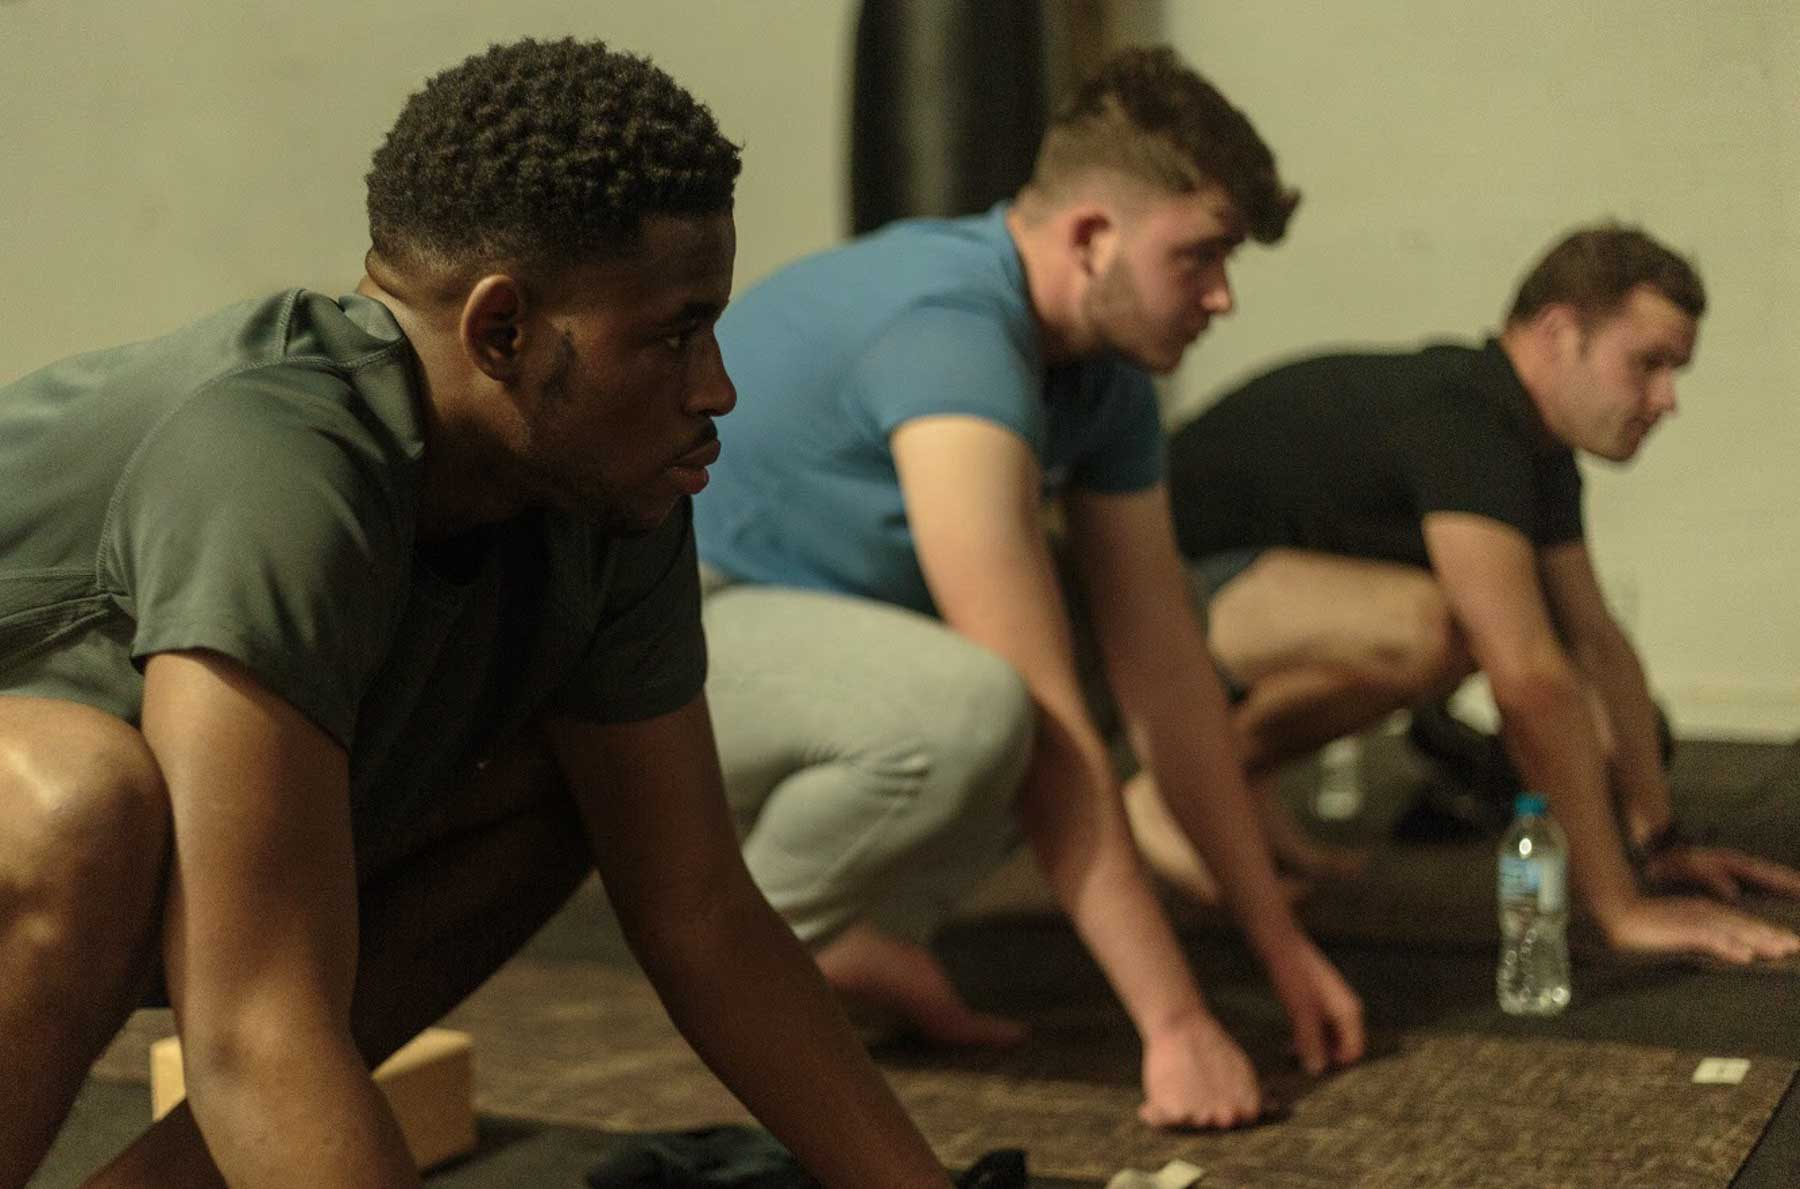 Three young men doing yoga squat